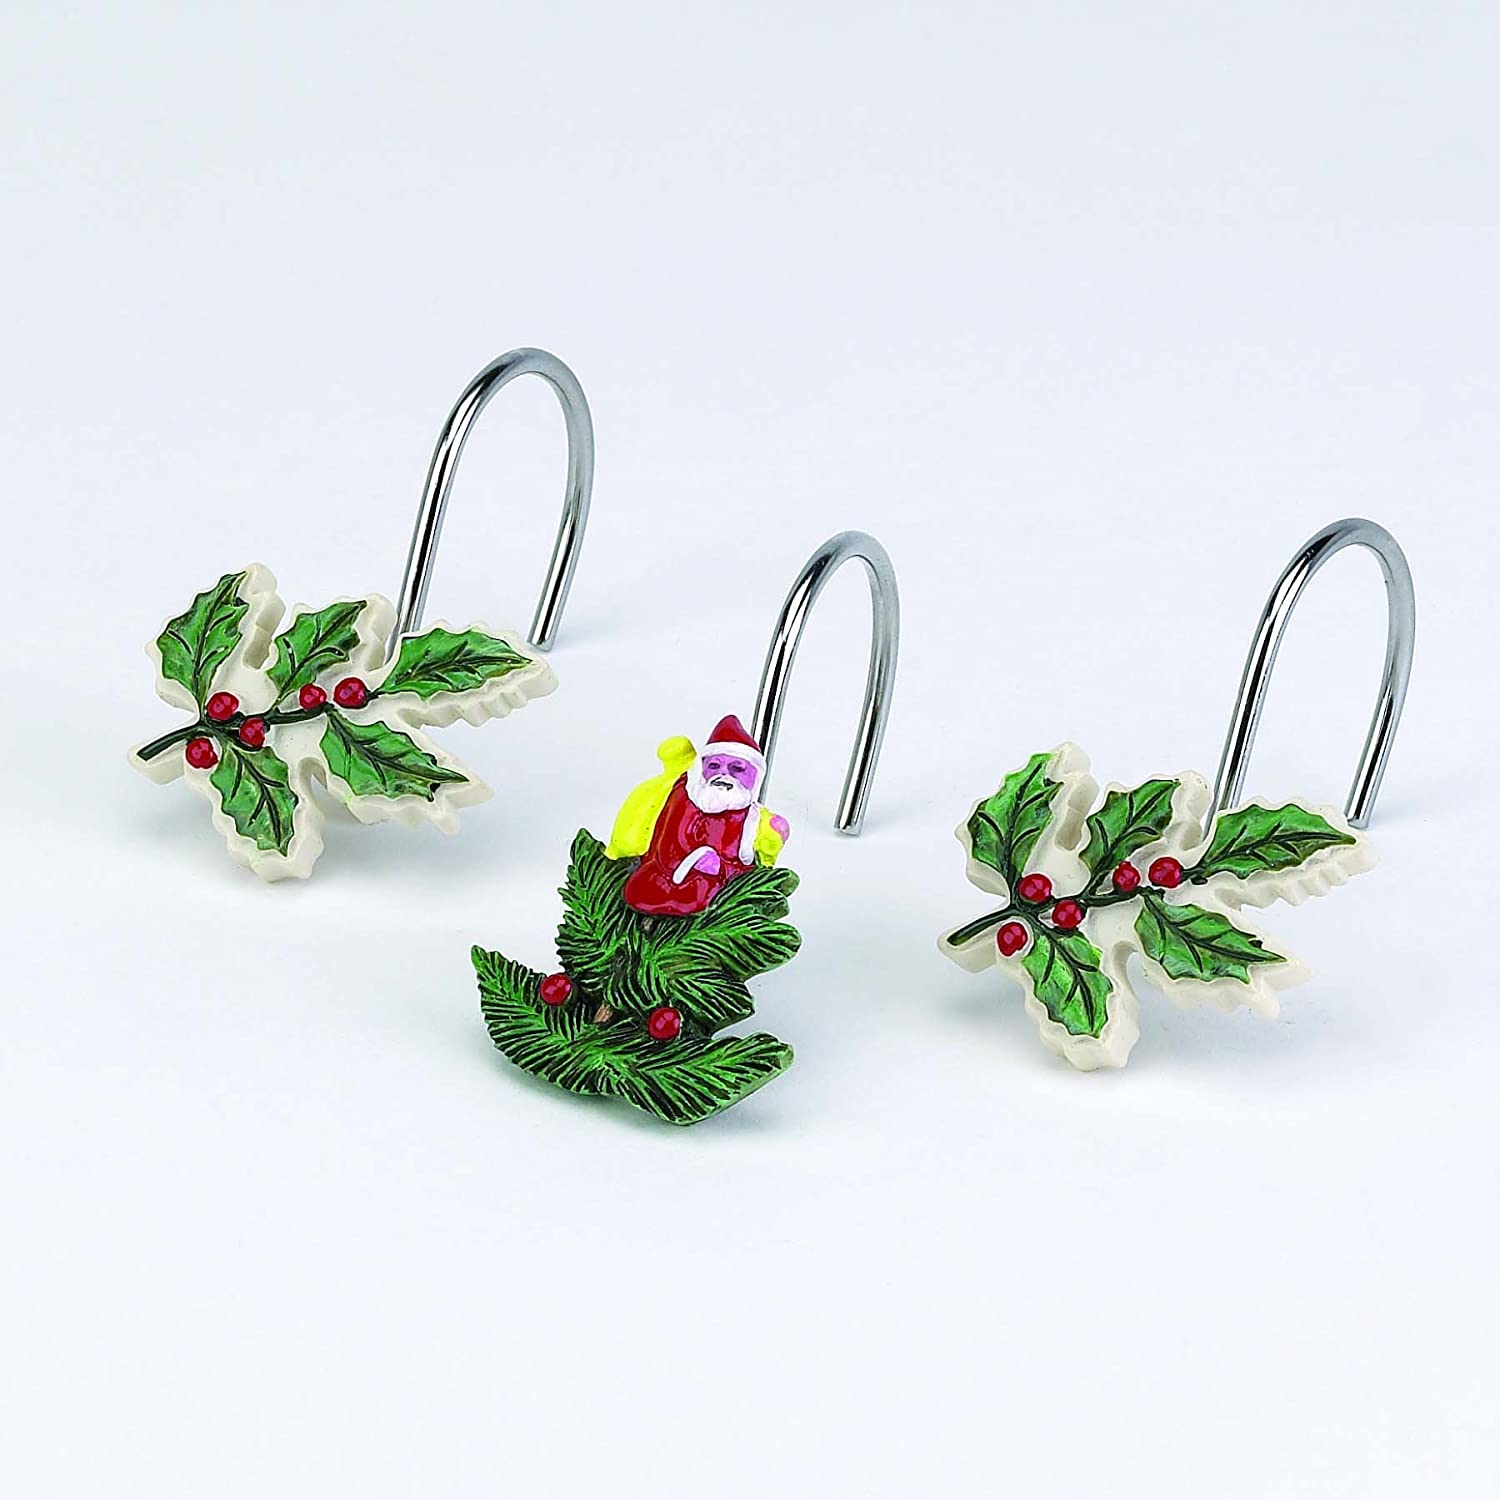 Spode Ceramic Ivory Santa & Mistletoe Shower Curtain Hooks